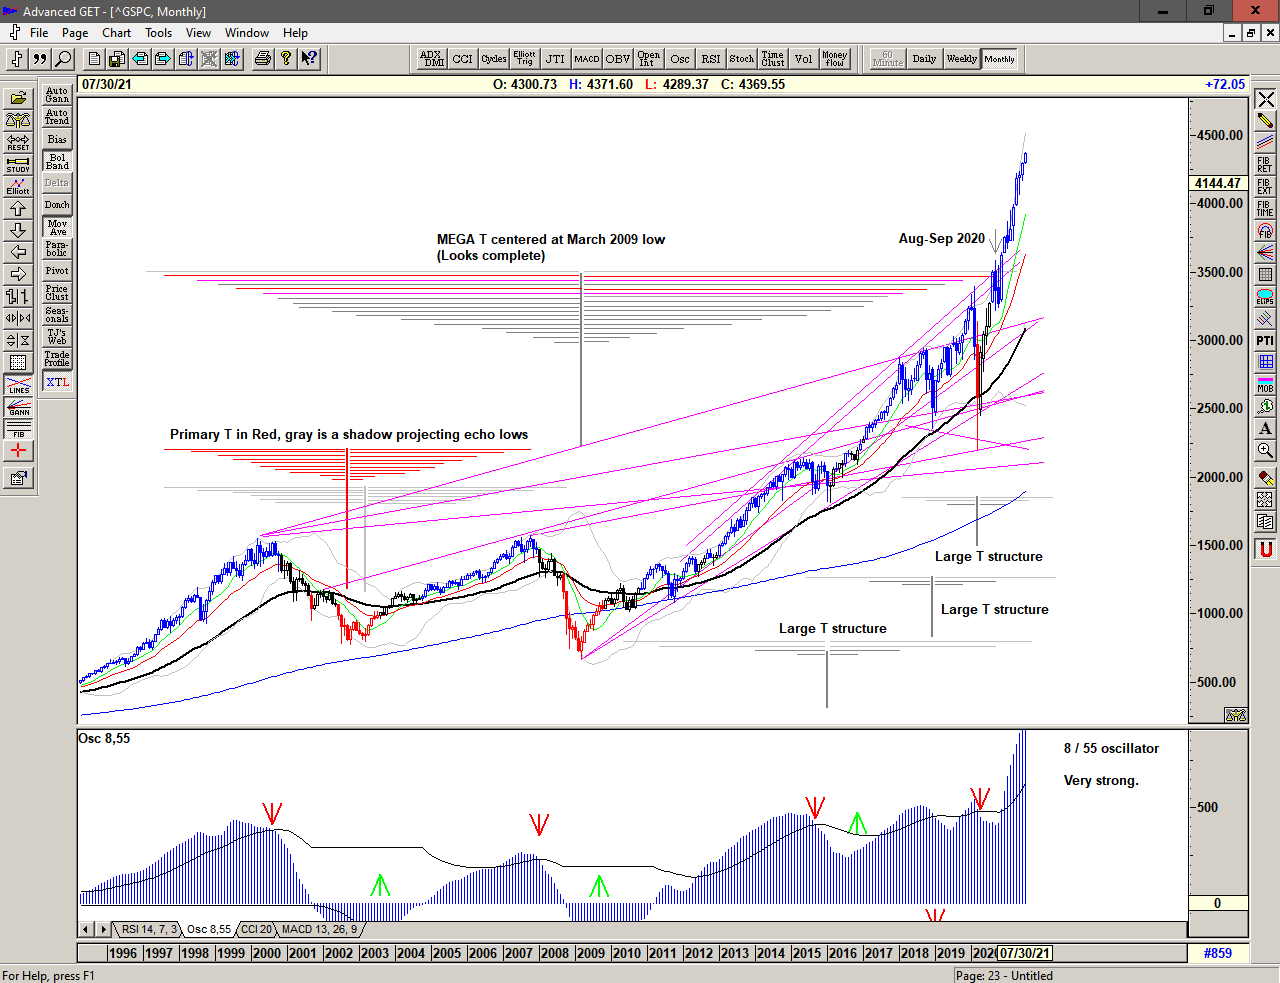 Monthly chart of S&P 500 for 12 July 2021